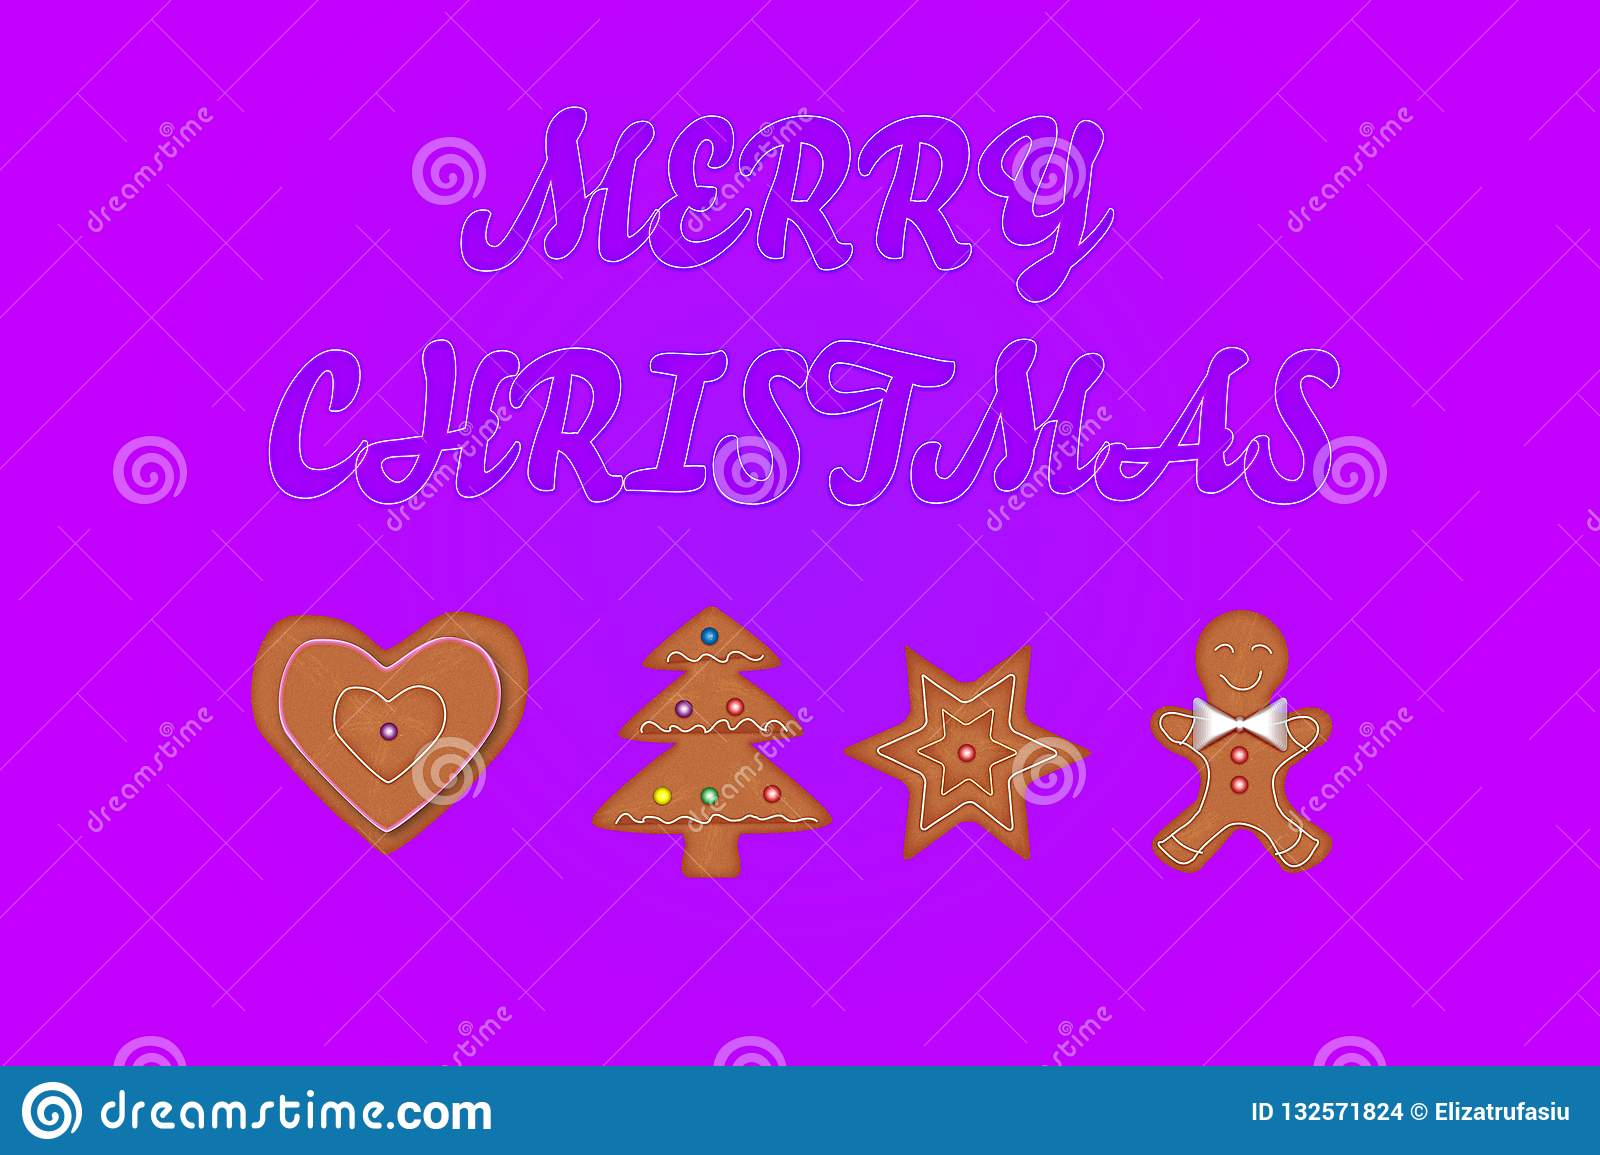 Merry Christmas greeting card with gingerbread cookies